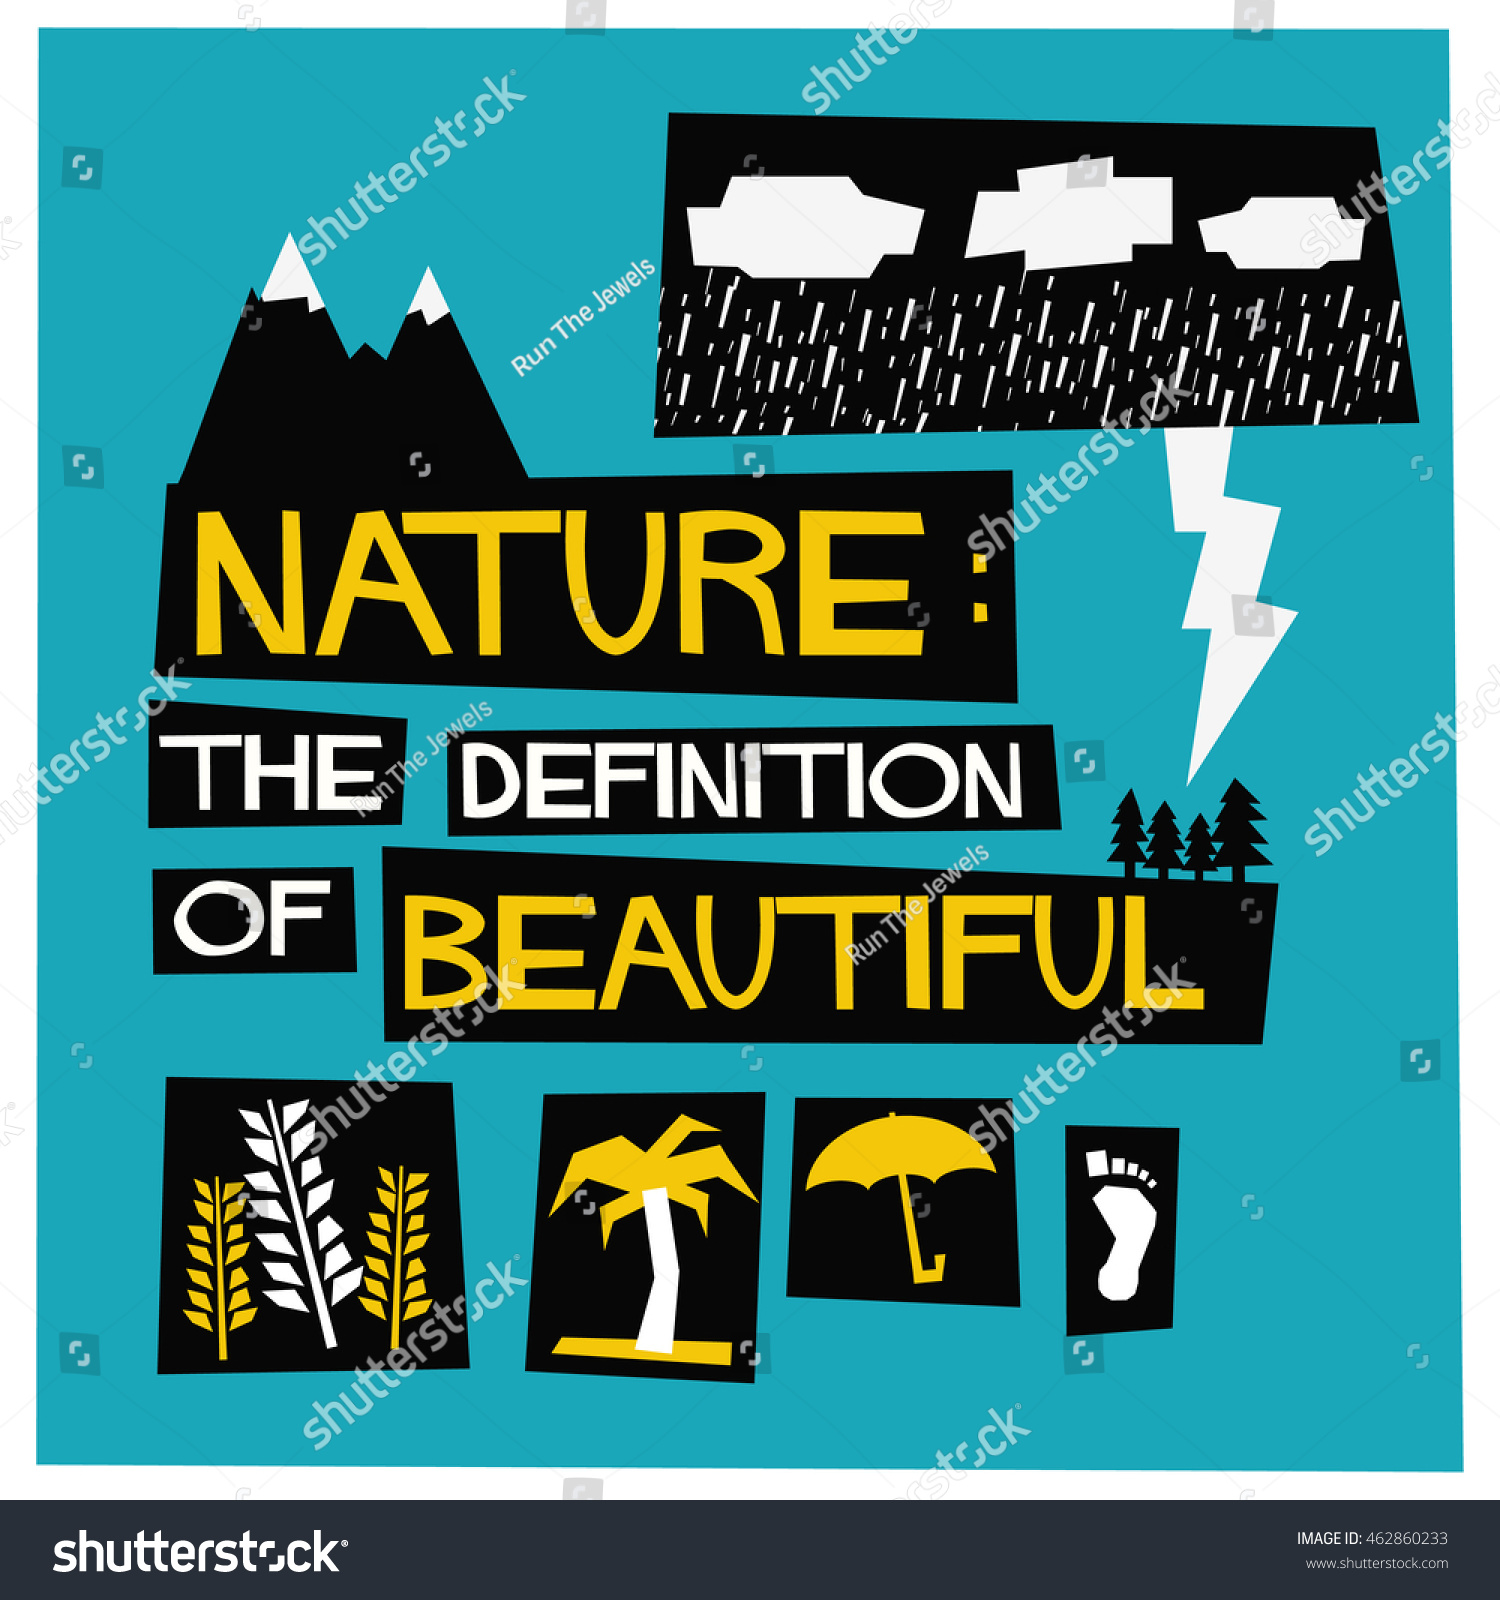 Poster design definition - Poster Design Definition Nature The Definition Of Beautiful Flat Style Vector Illustration Quote Poster Design